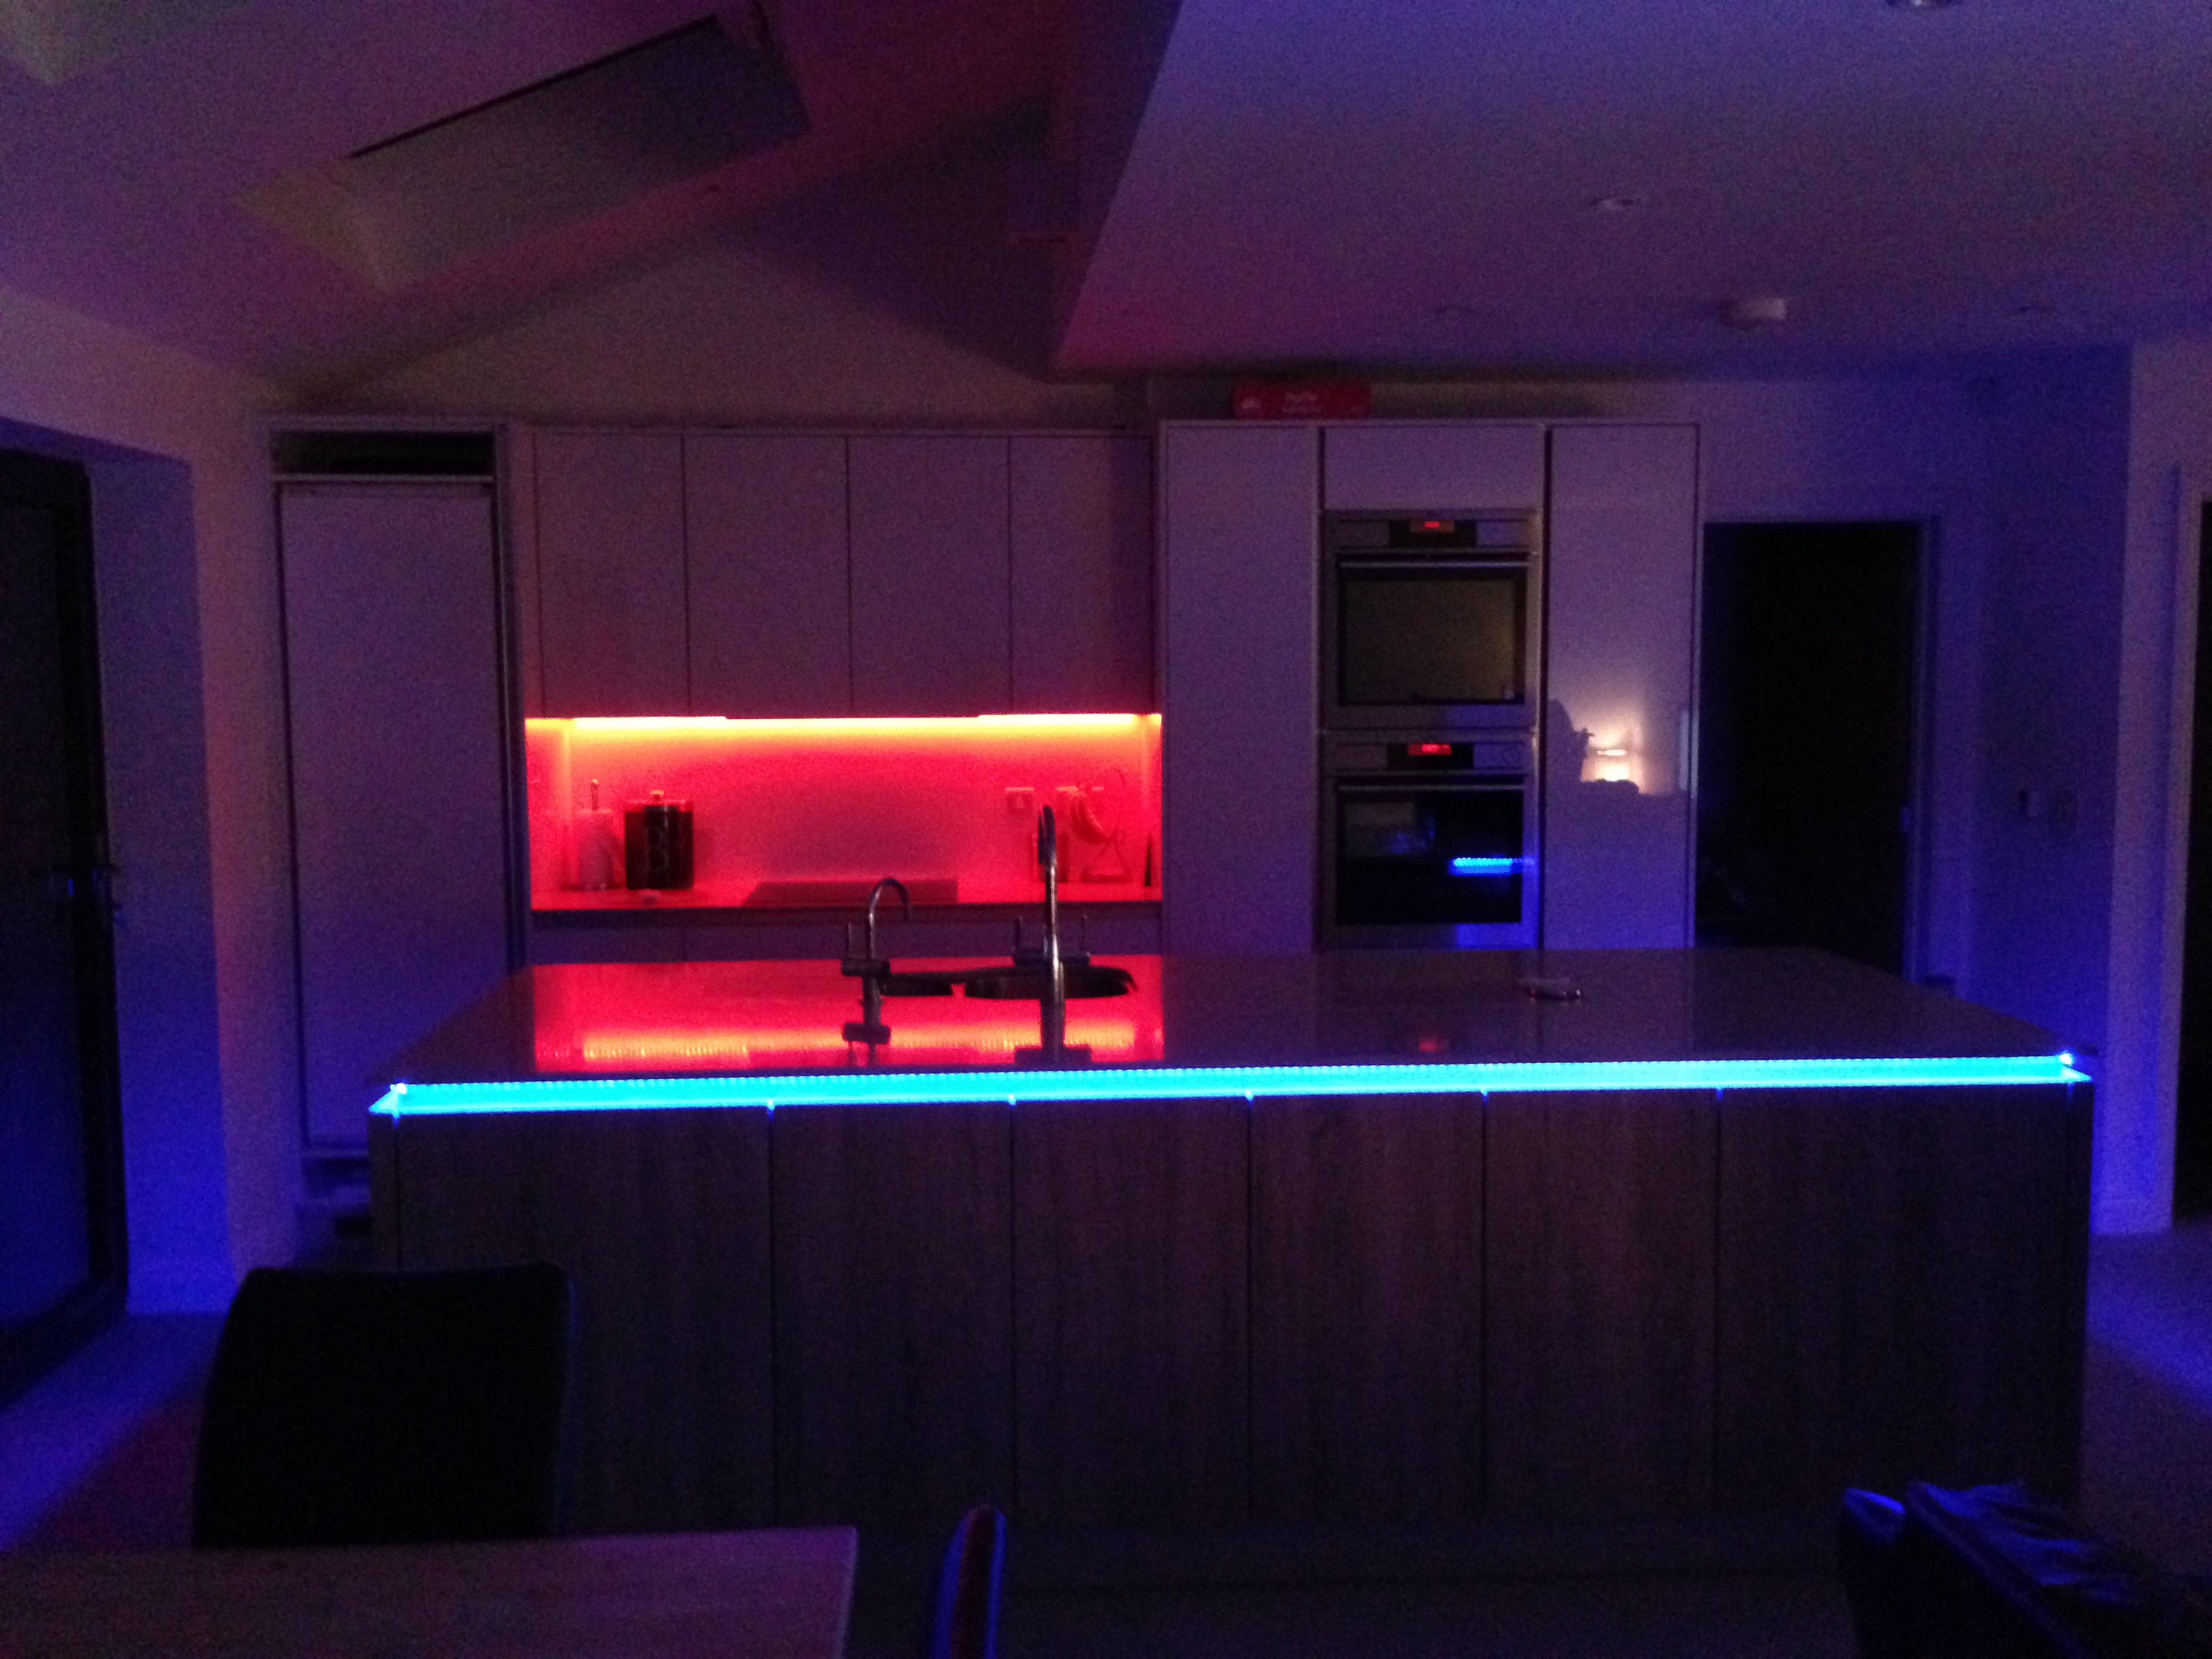 Coloured lights in kitchen